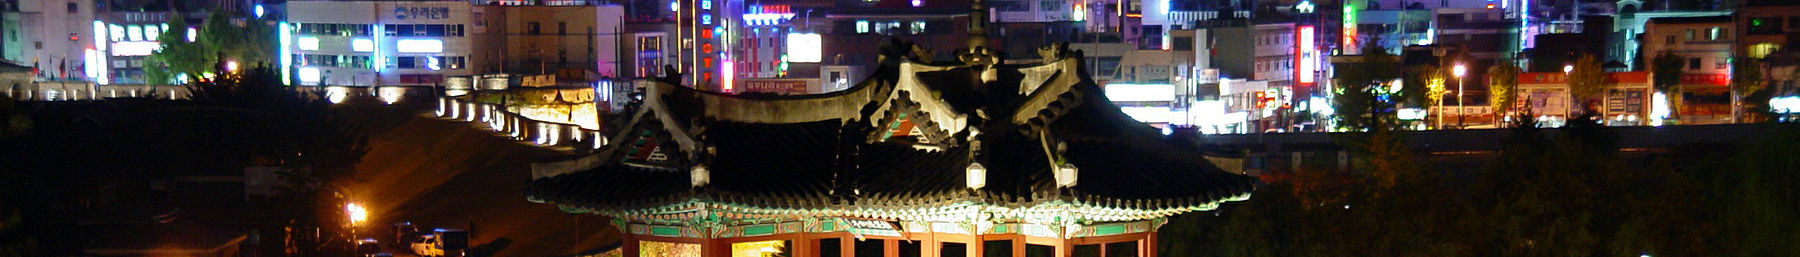 Old and new Korea: Hwaseong fortress and downtown Suwon by night